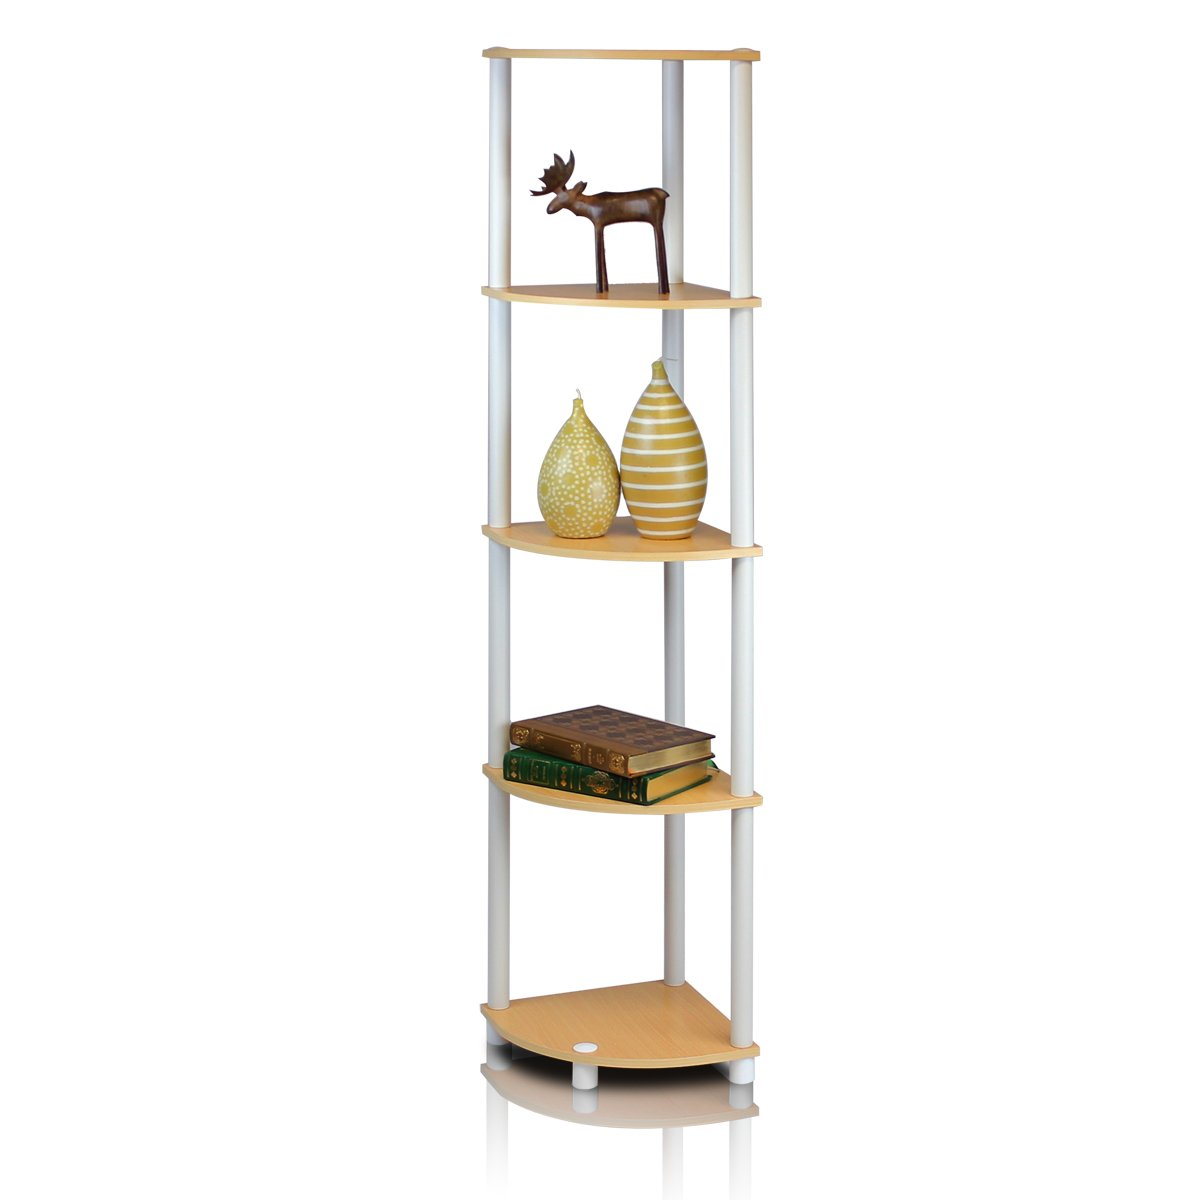 Exhibition Stand Shelves : Tier corner shelf display rack home furniture shelving